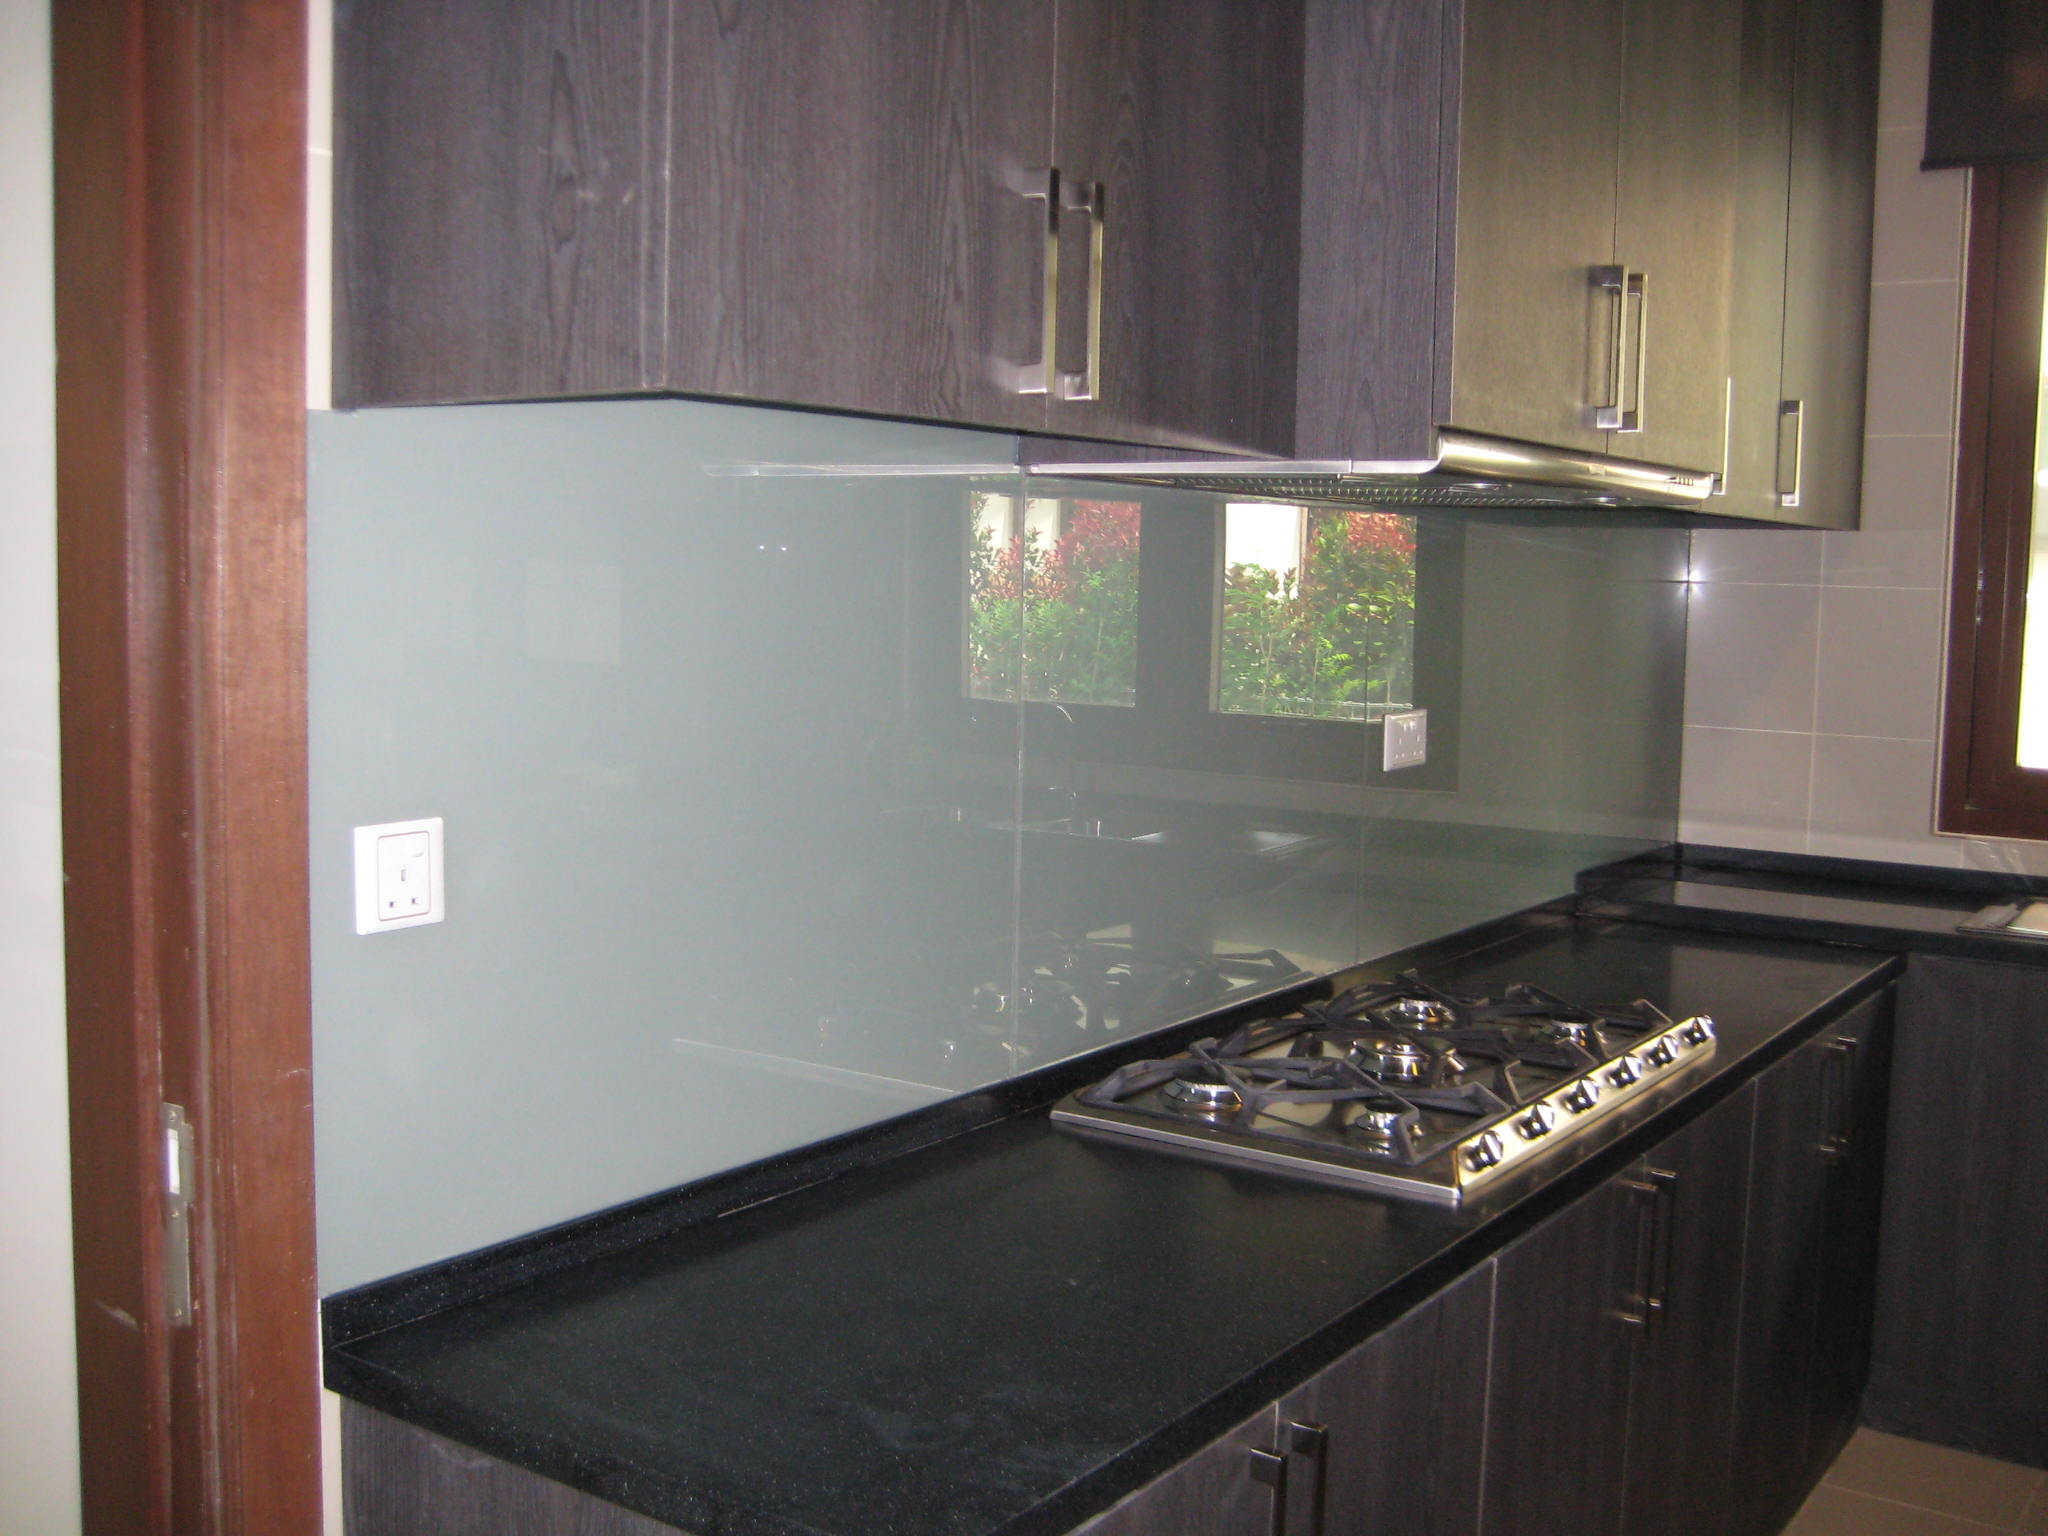 solid glass backsplash kitchen img 1568 glass malaysia glass renovation idea 5598